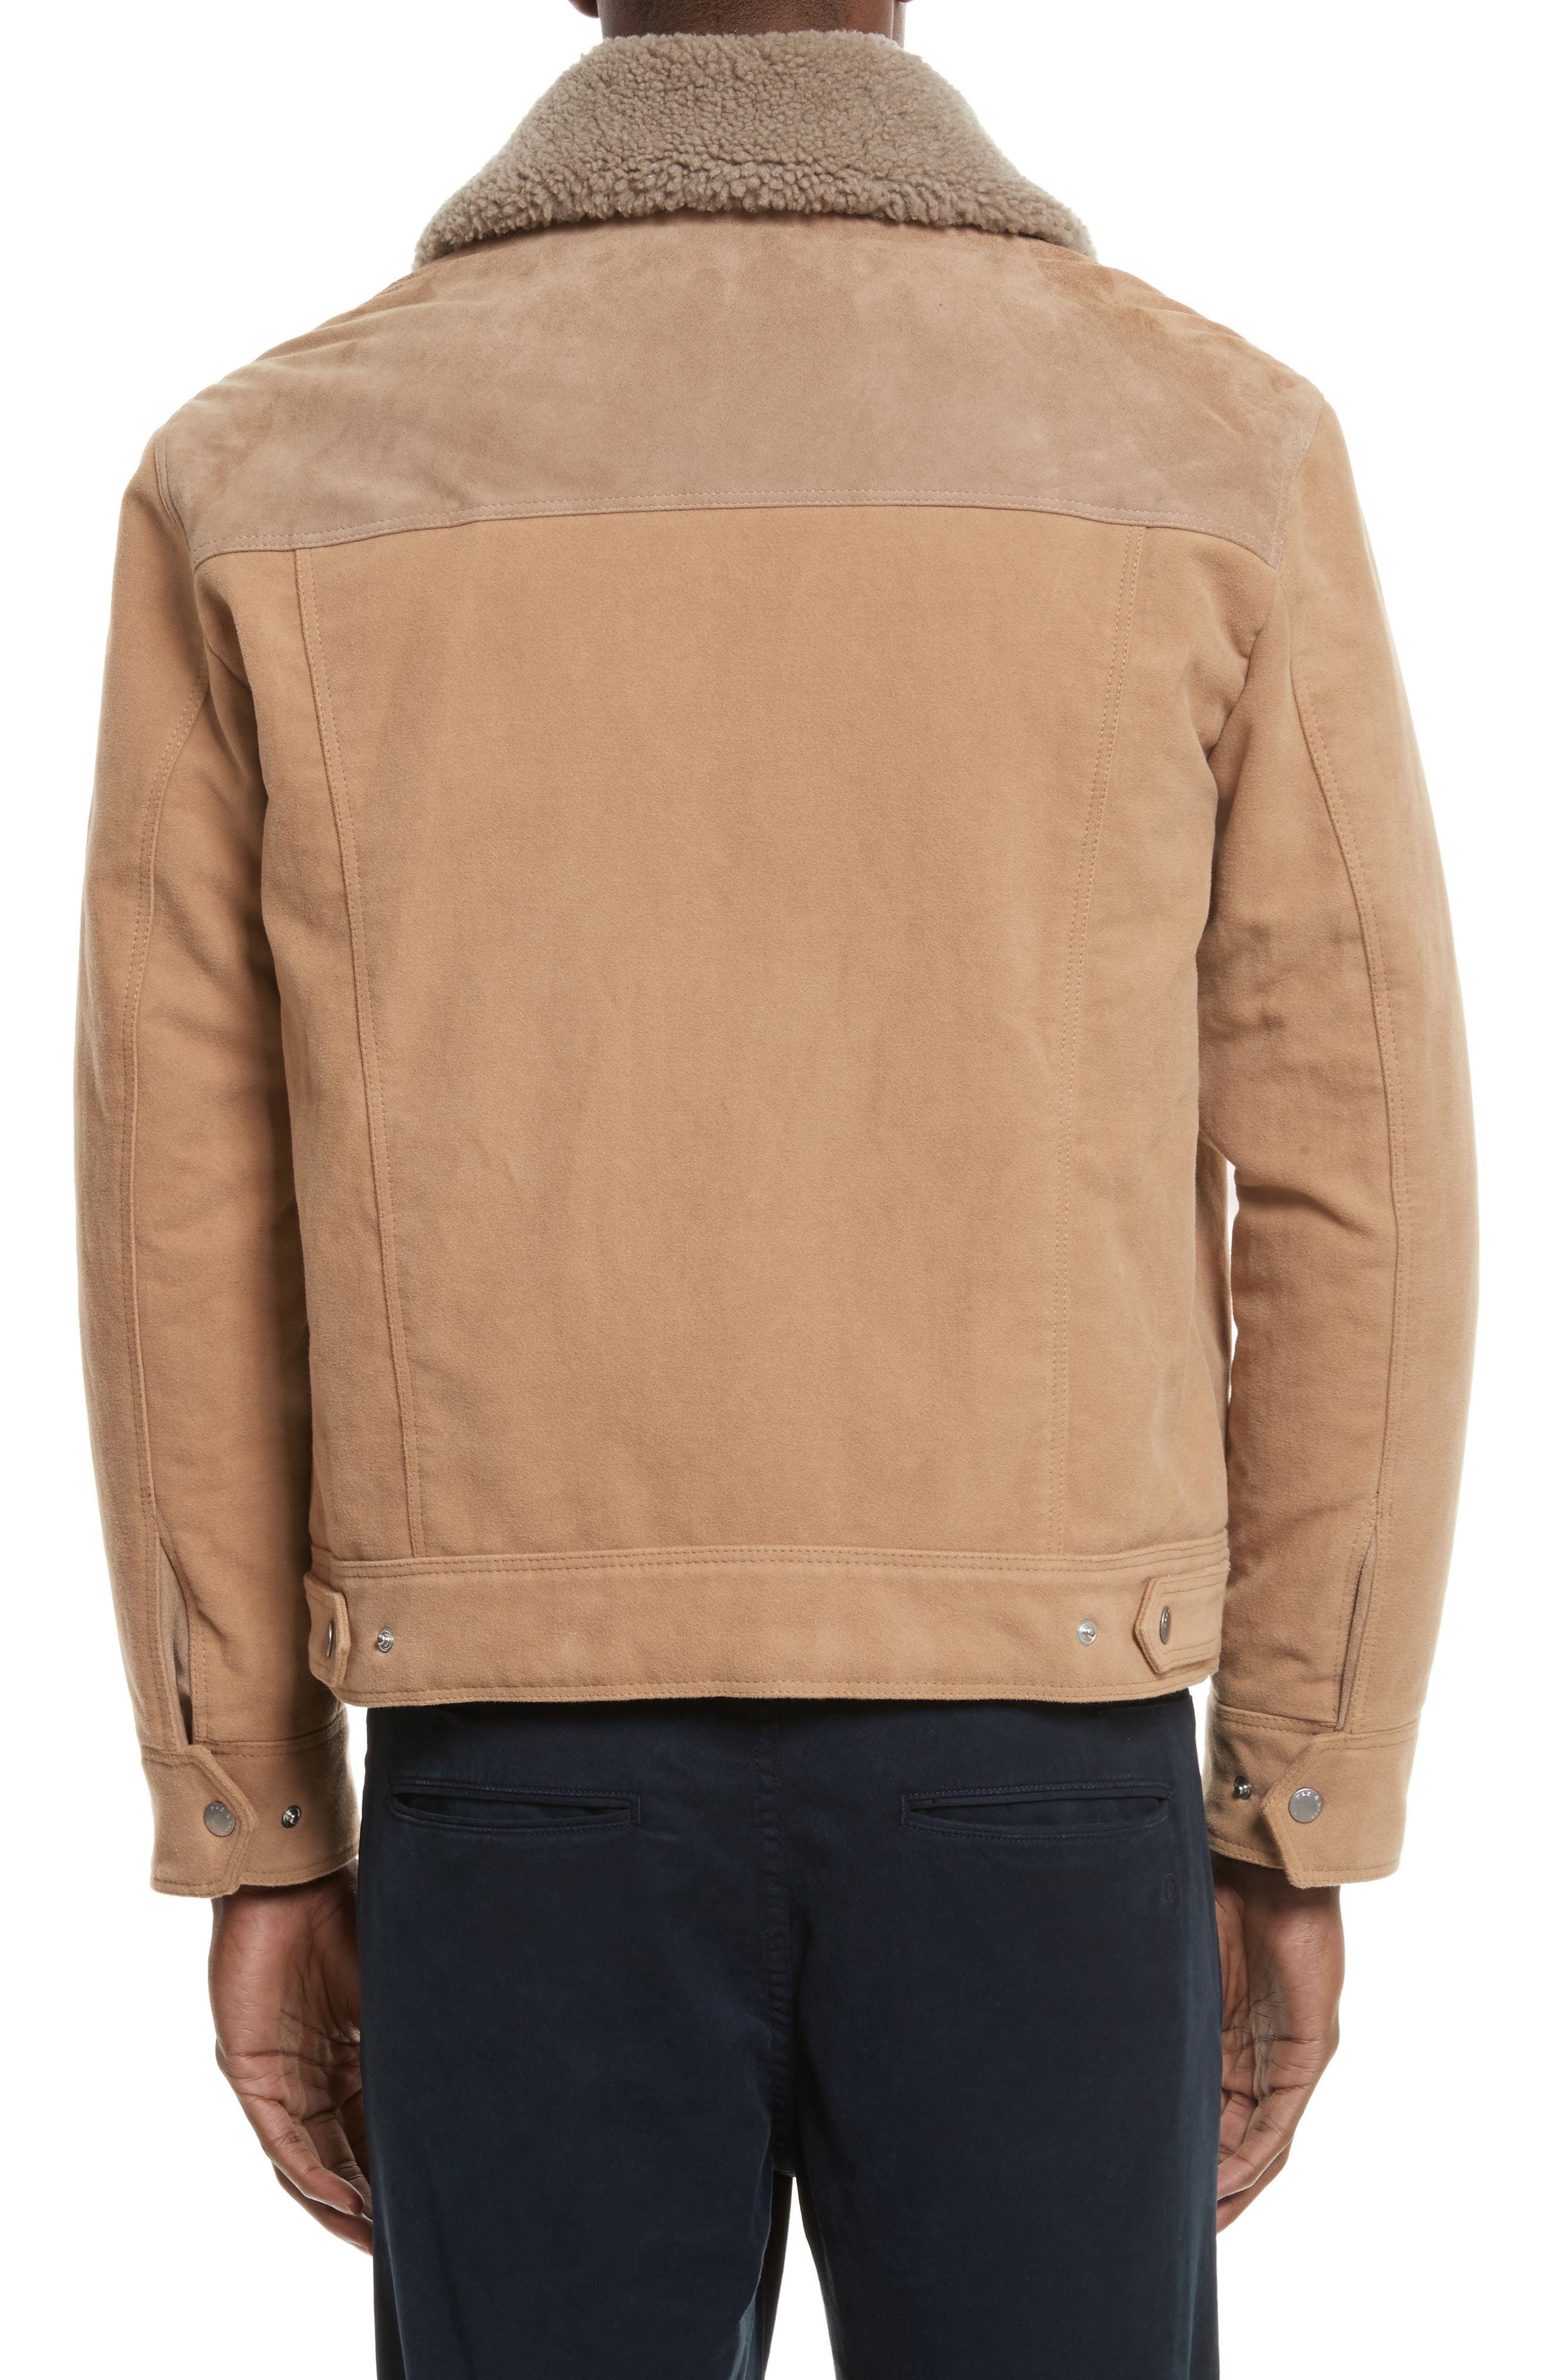 Matthew Work Jacket with Genuine Shearling Collar,                             Alternate thumbnail 2, color,